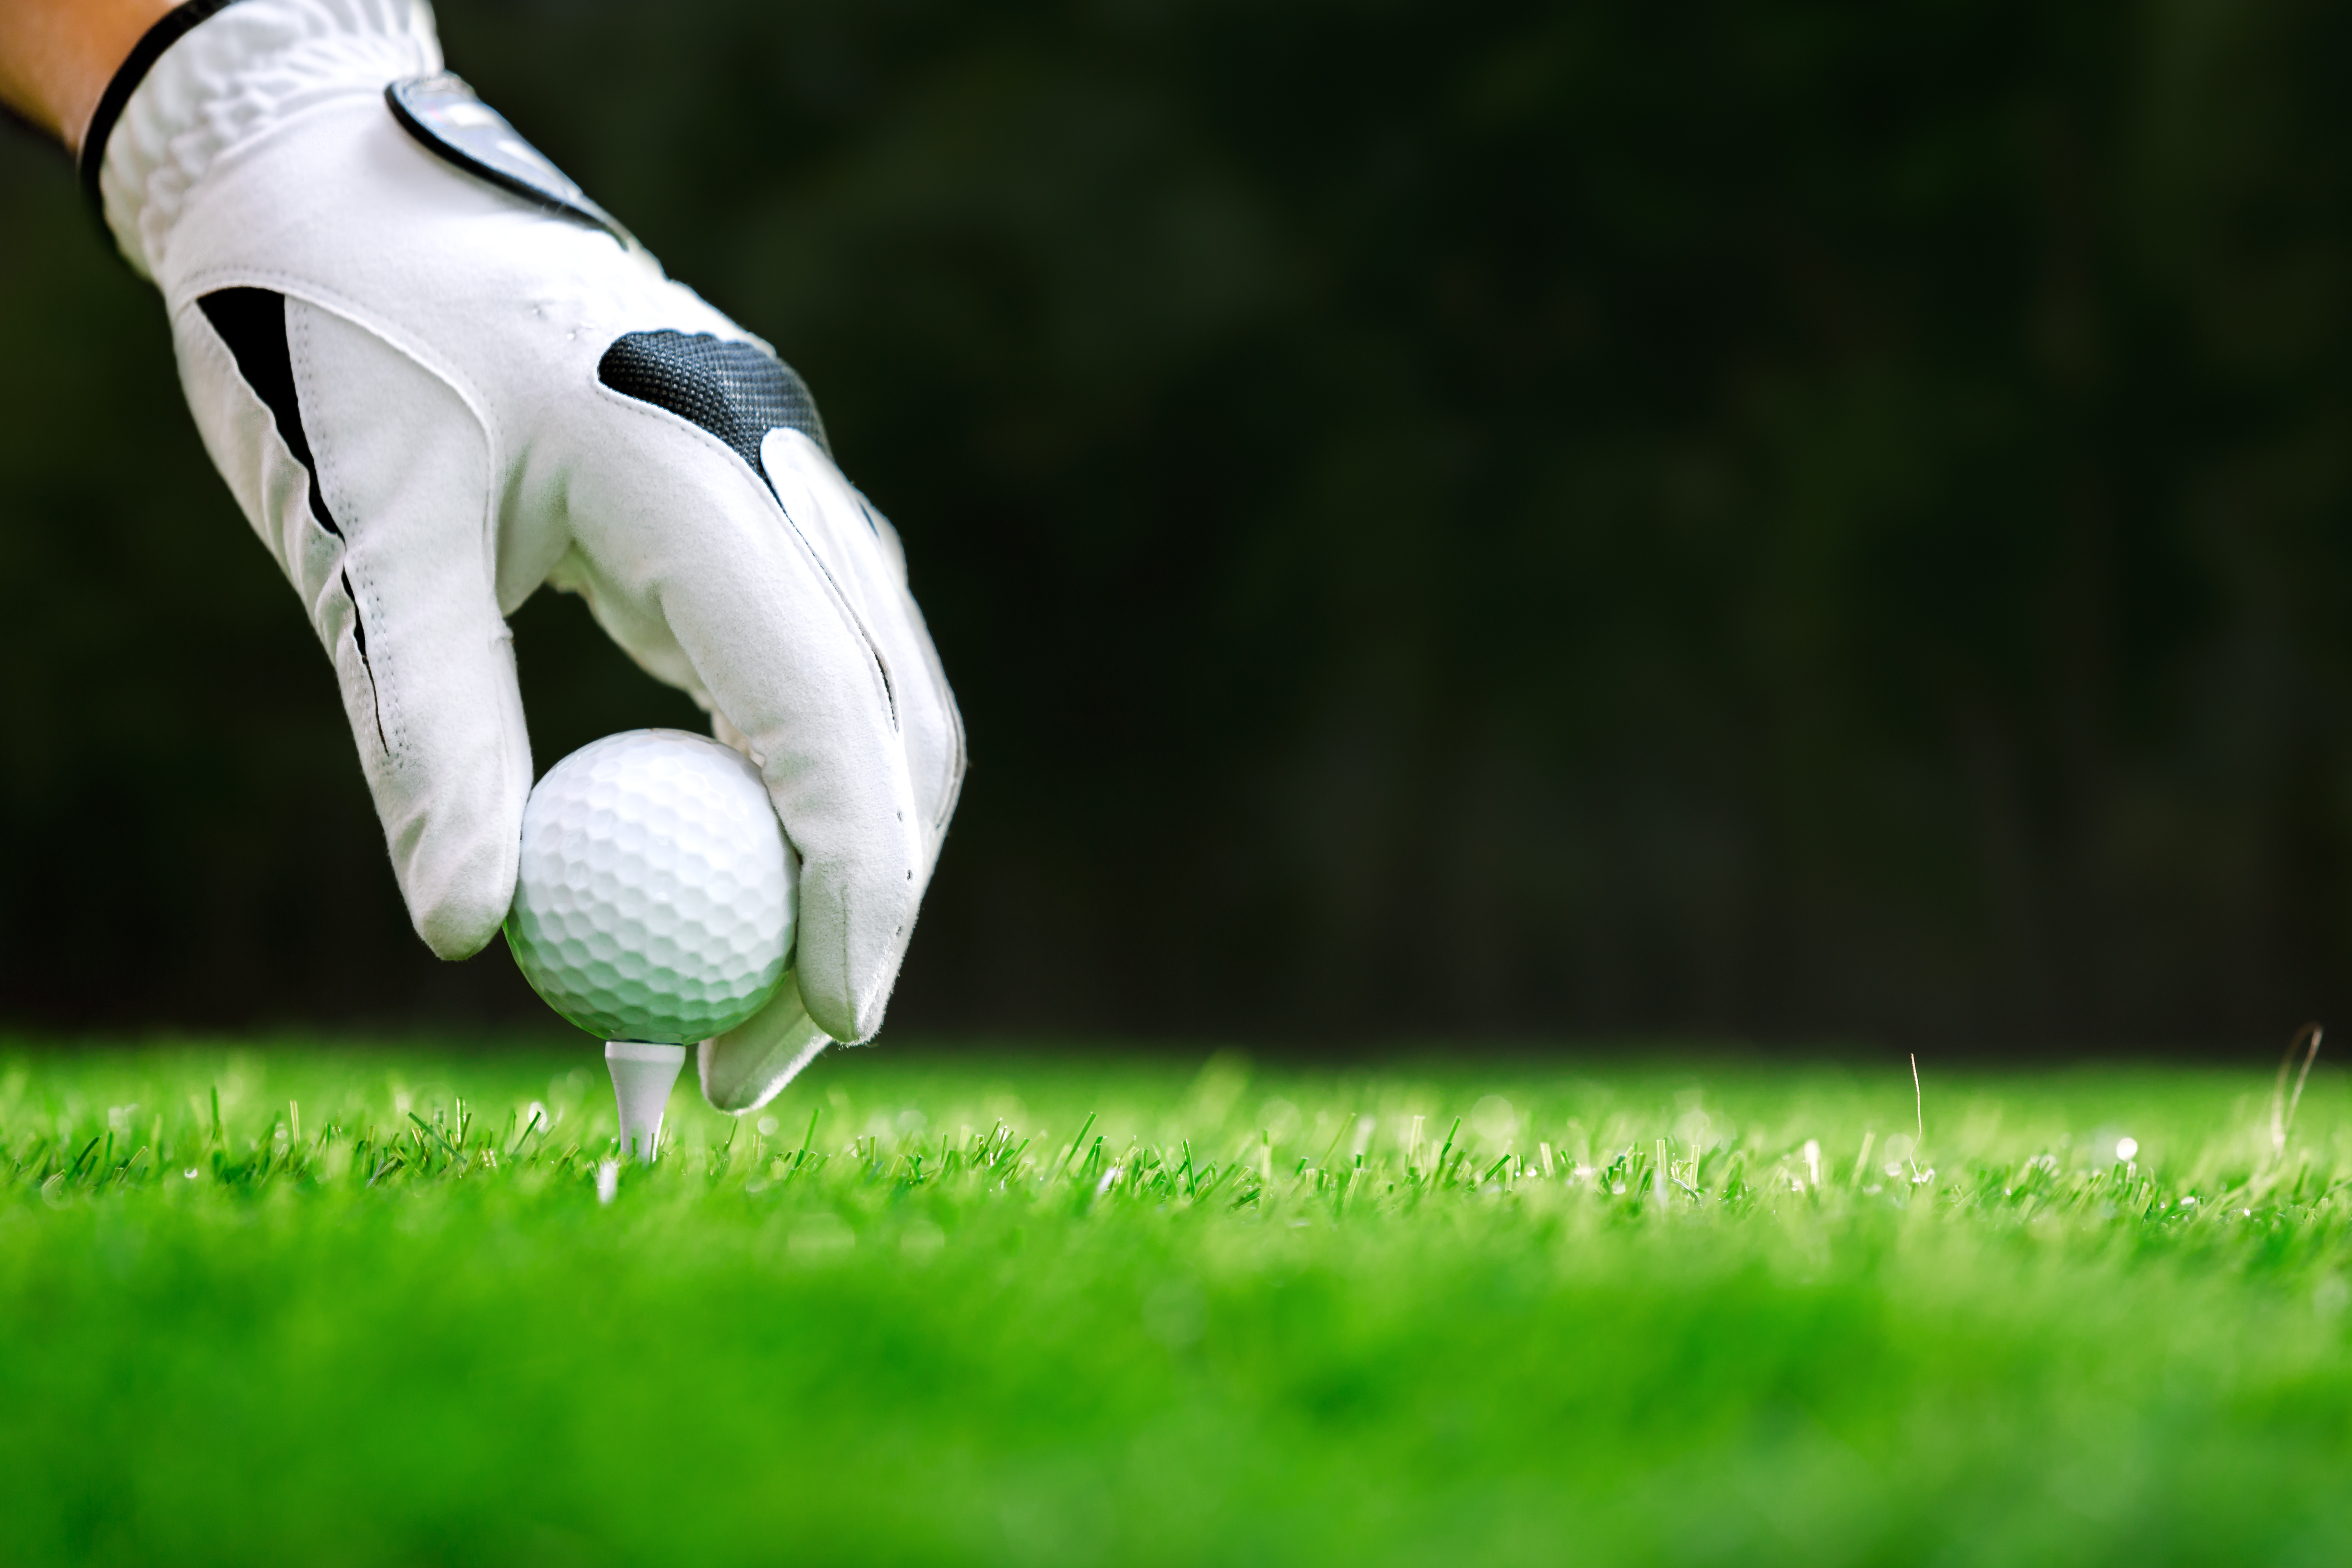 Improve Your Handicap With New Golf Balls and Tees